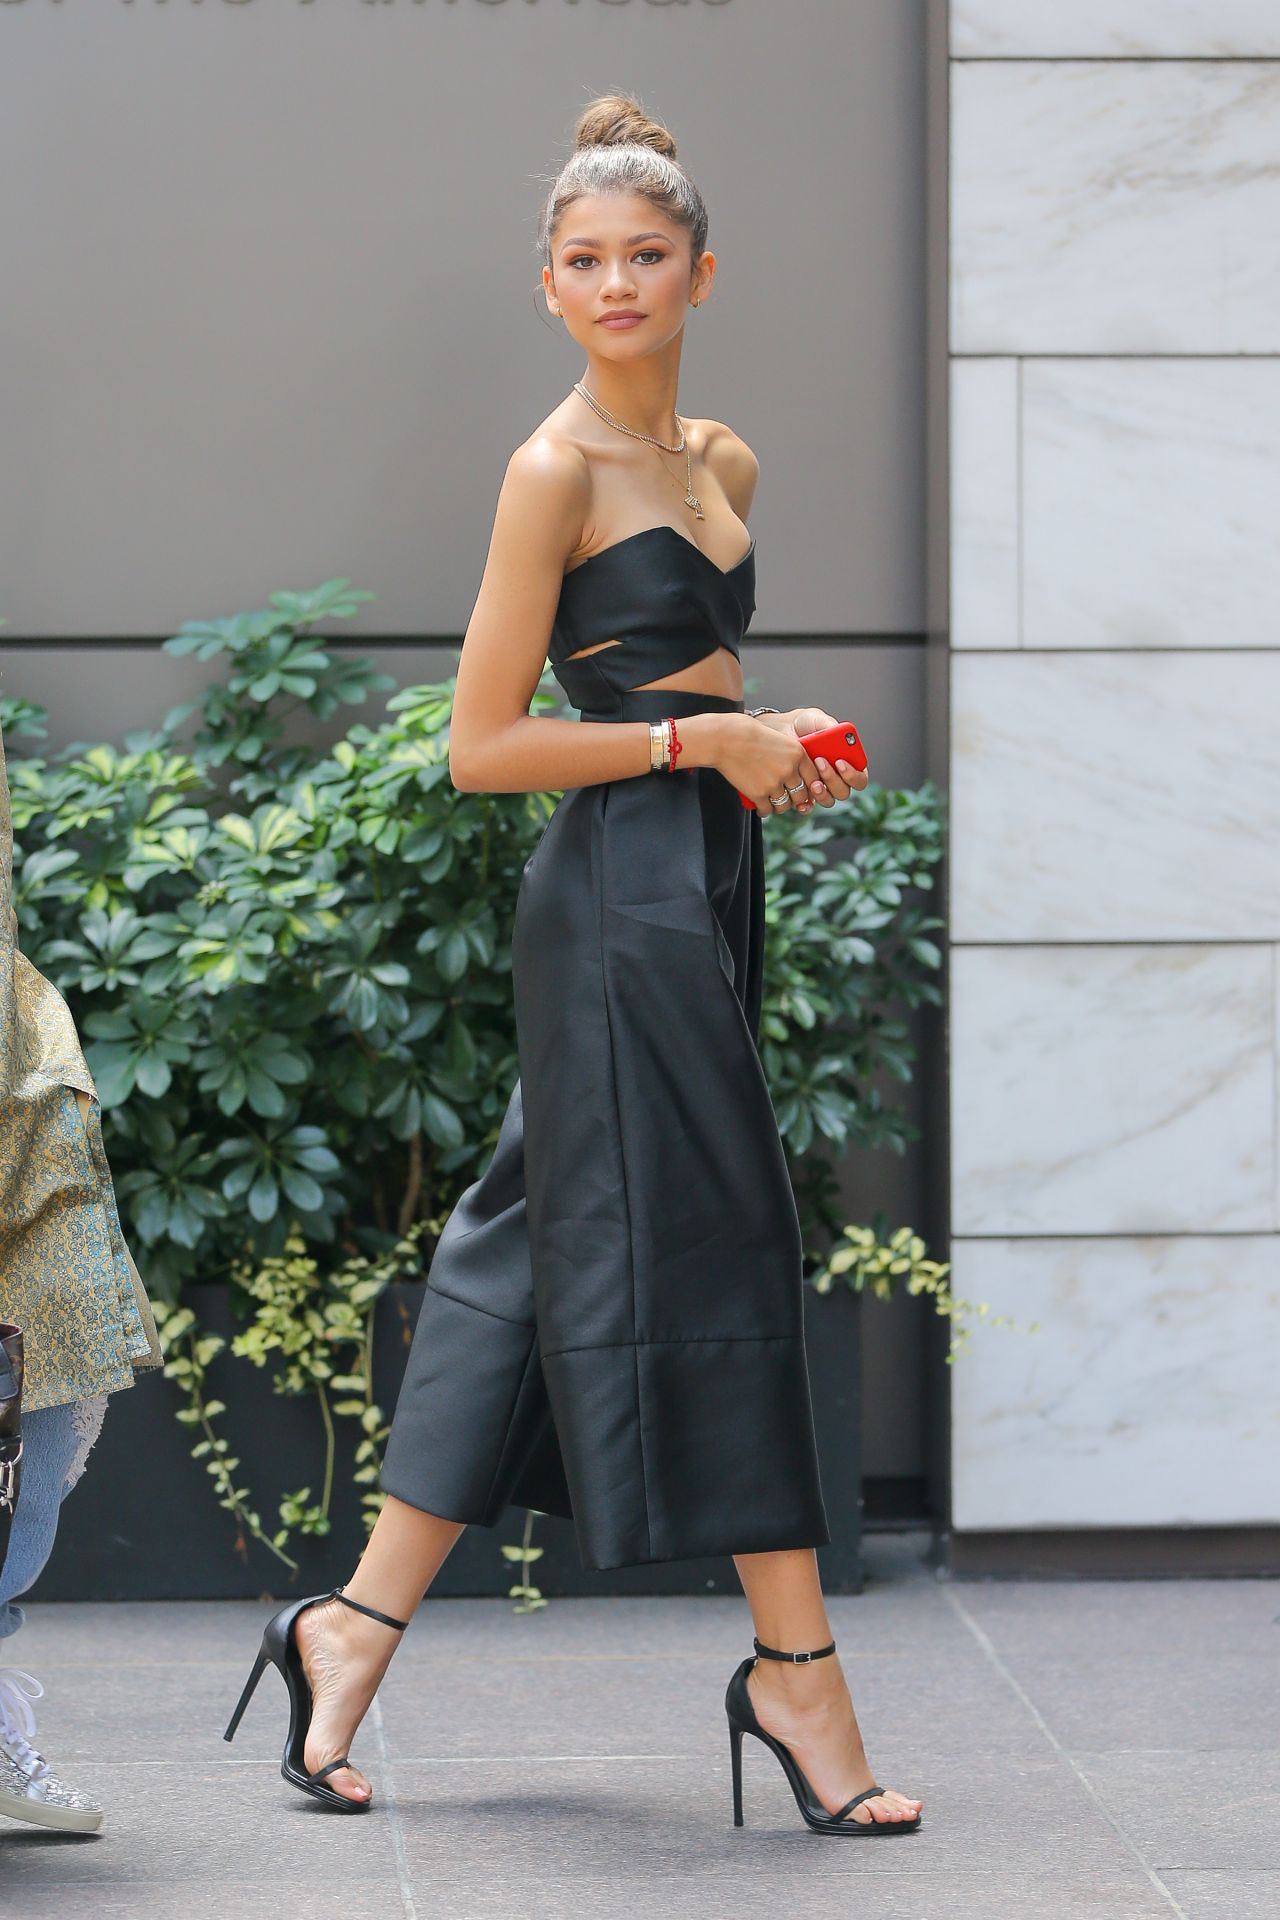 zendaya-style-arriving-at-an-office-building-in-nyc-august-2015_1